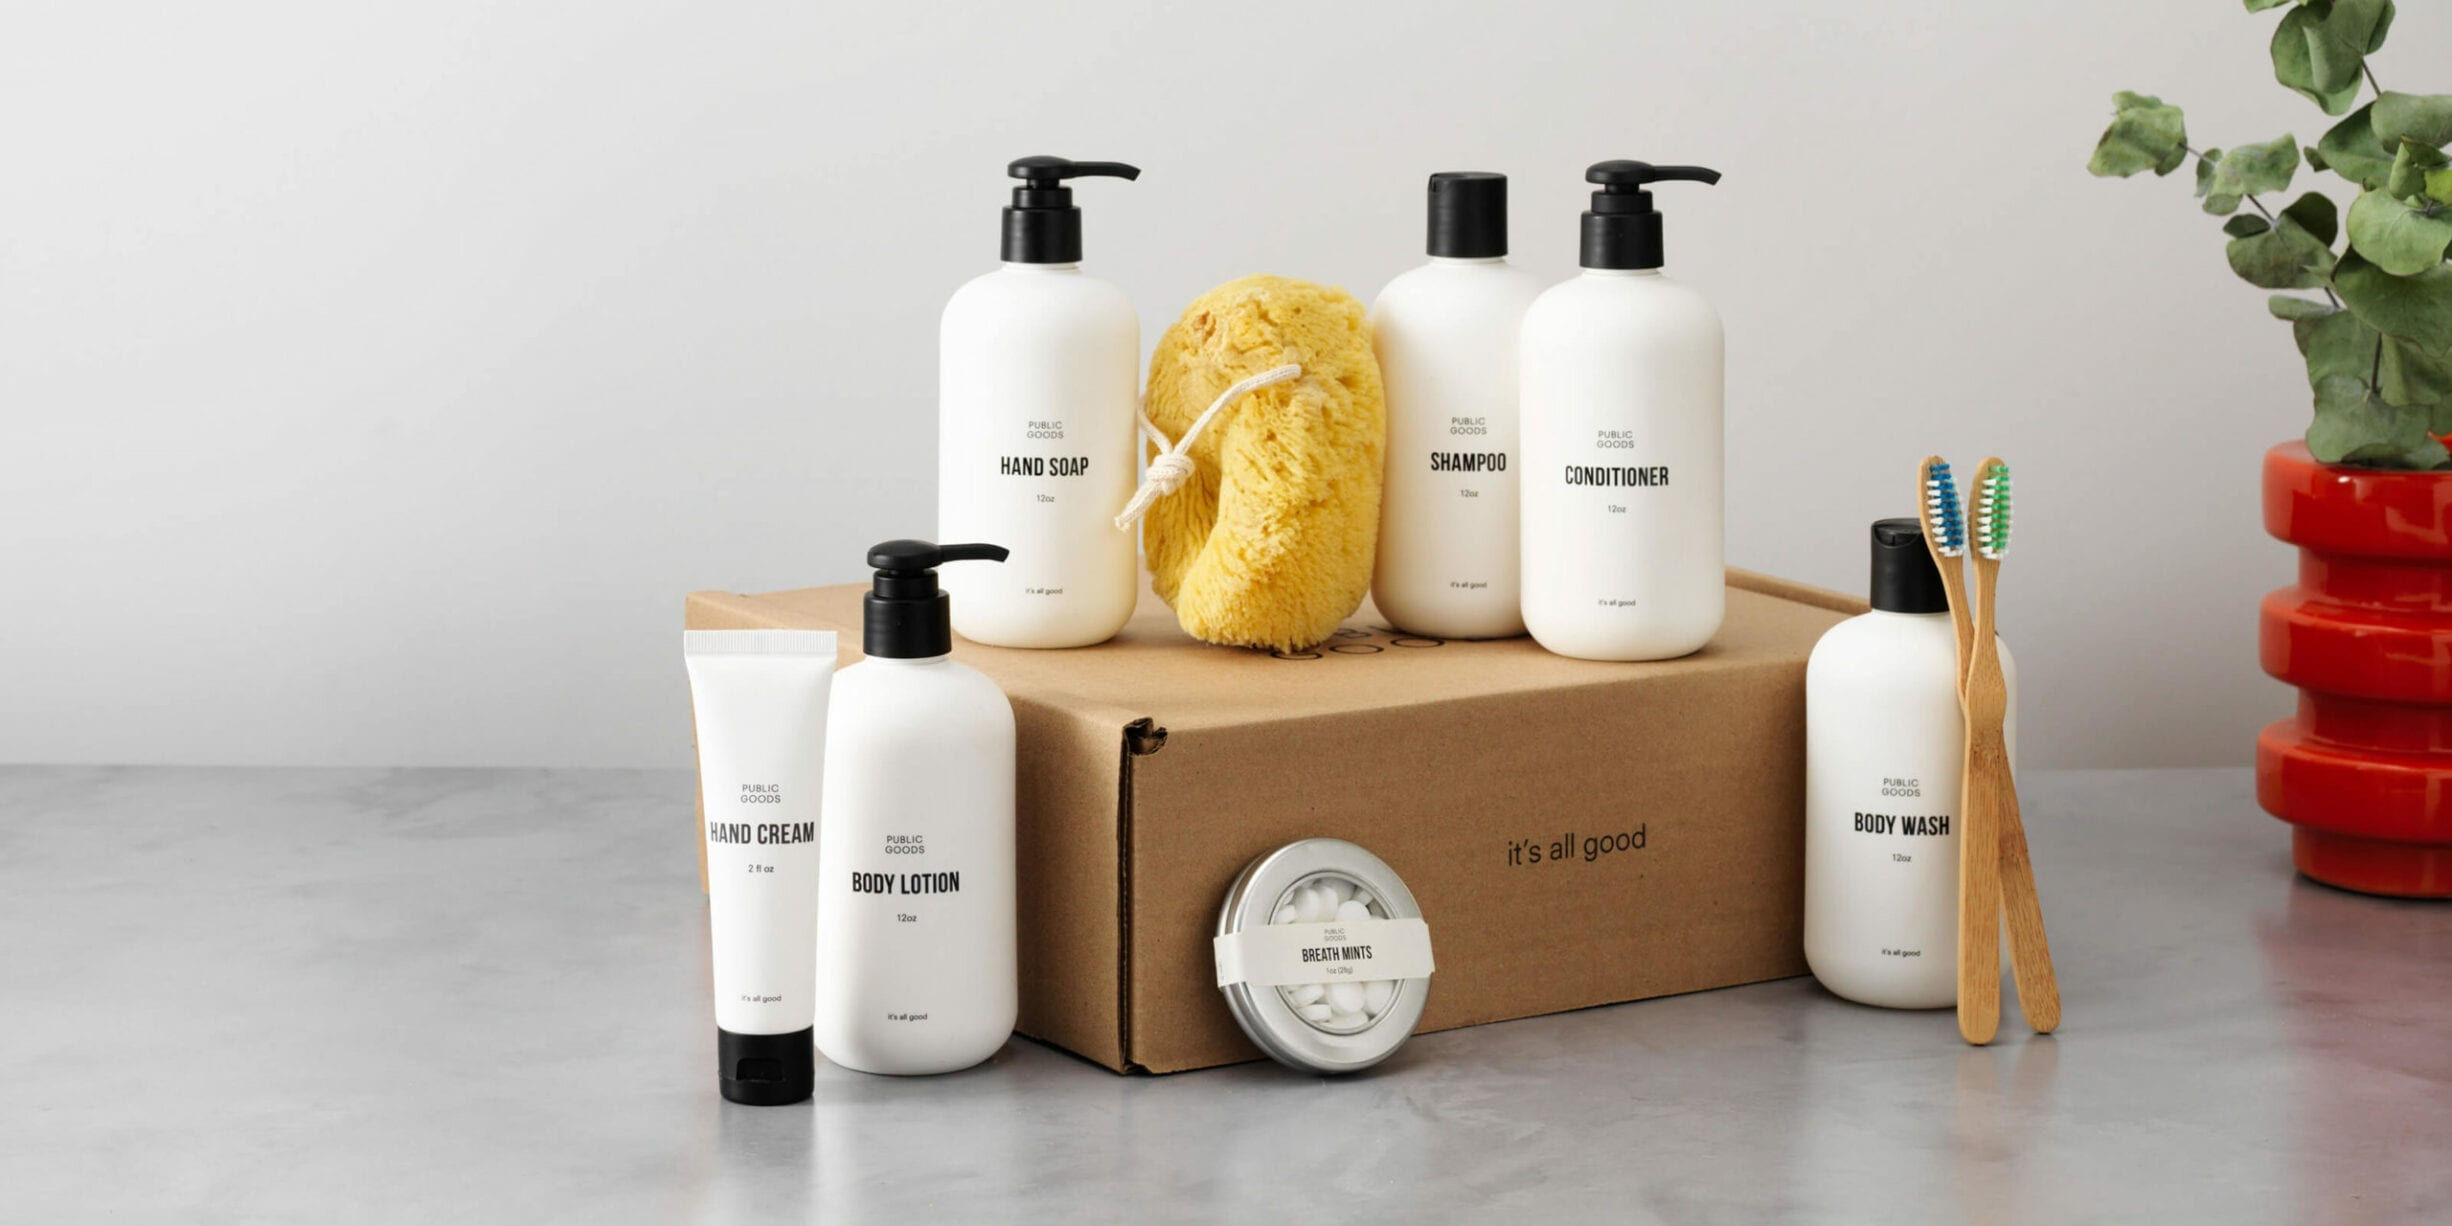 public goods bundle with hand cream, body lotion, mints, hand soap, sponge, body wash, shampoo, conditioner, toothbrushes